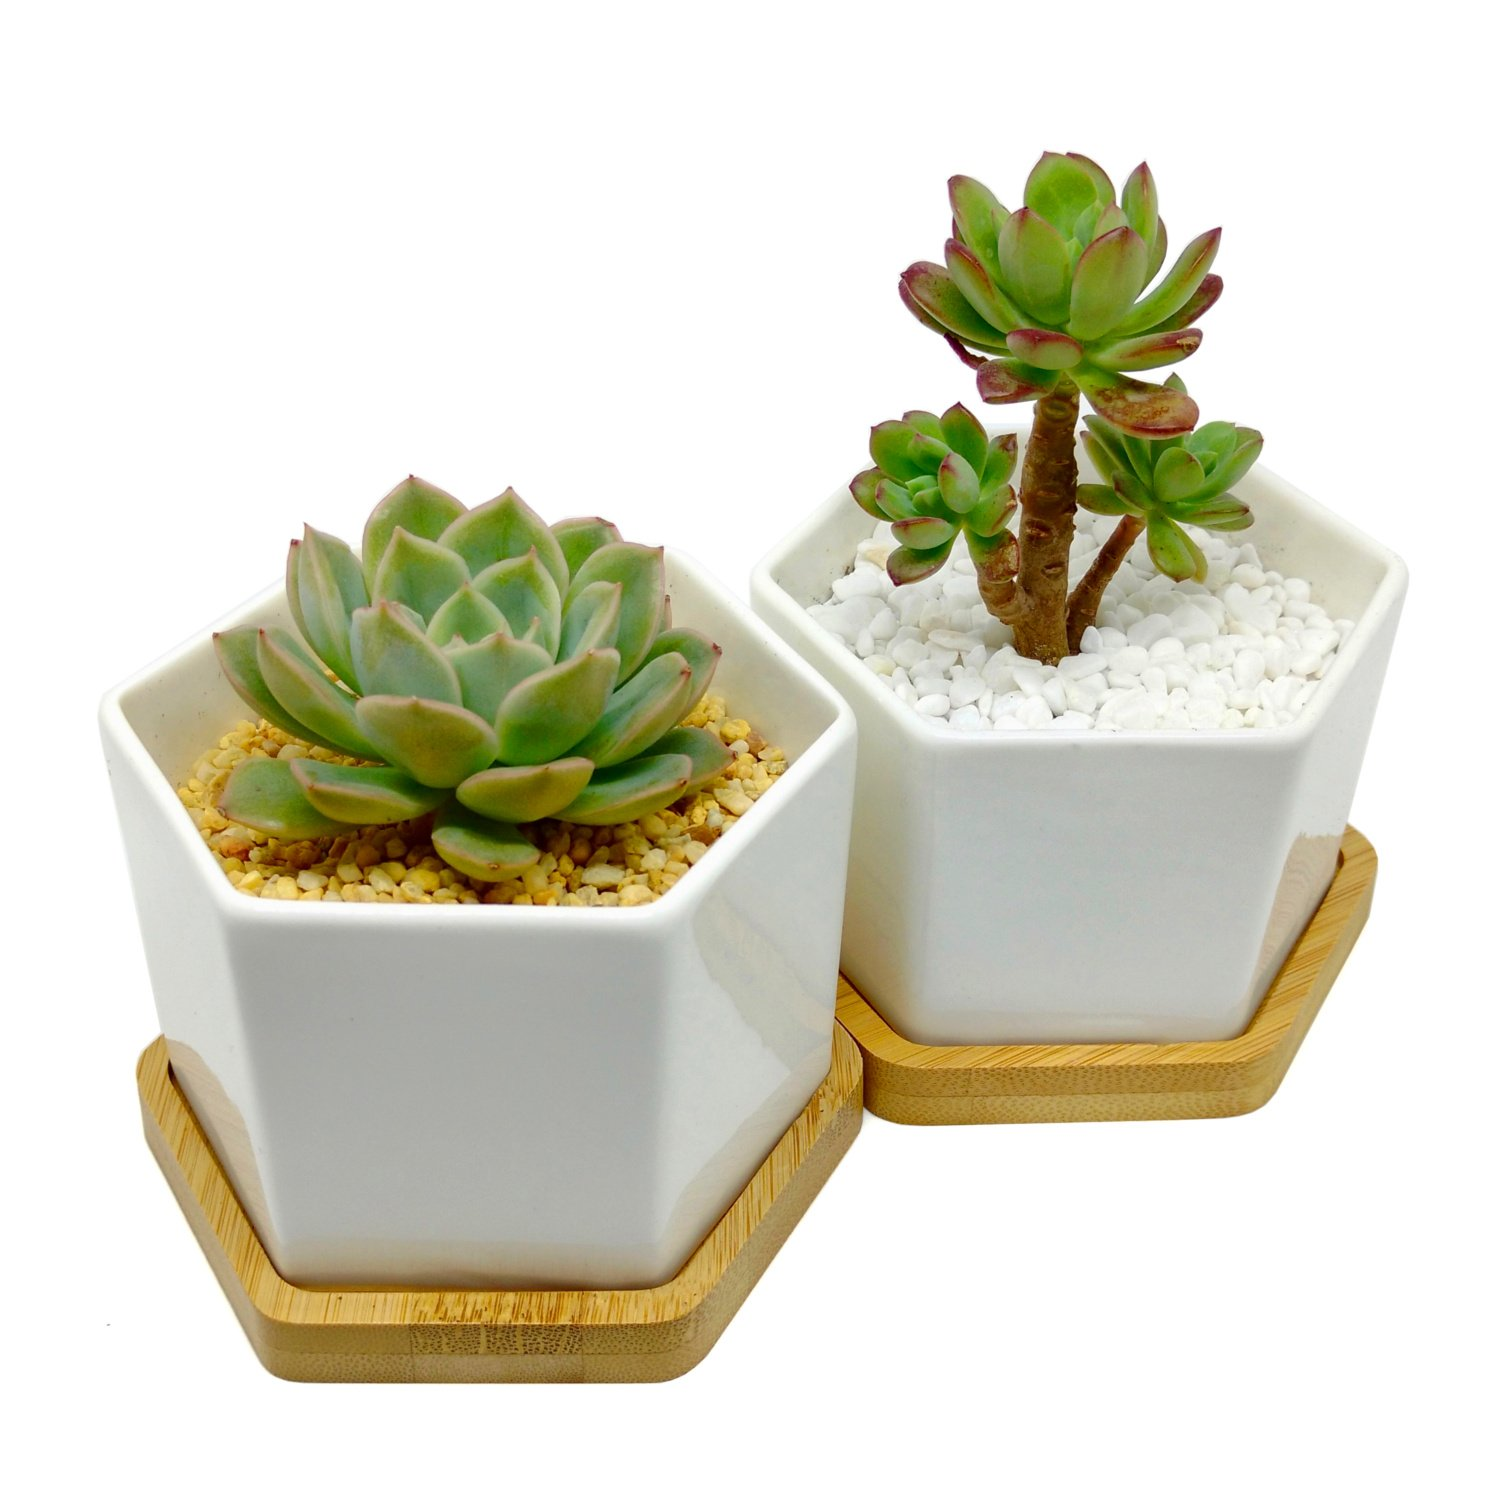 4-Inch Hexagonal White Ceramic Succulent Planter with Bamboo Tray | Set of Two | Minimalist Design by Espoir Living